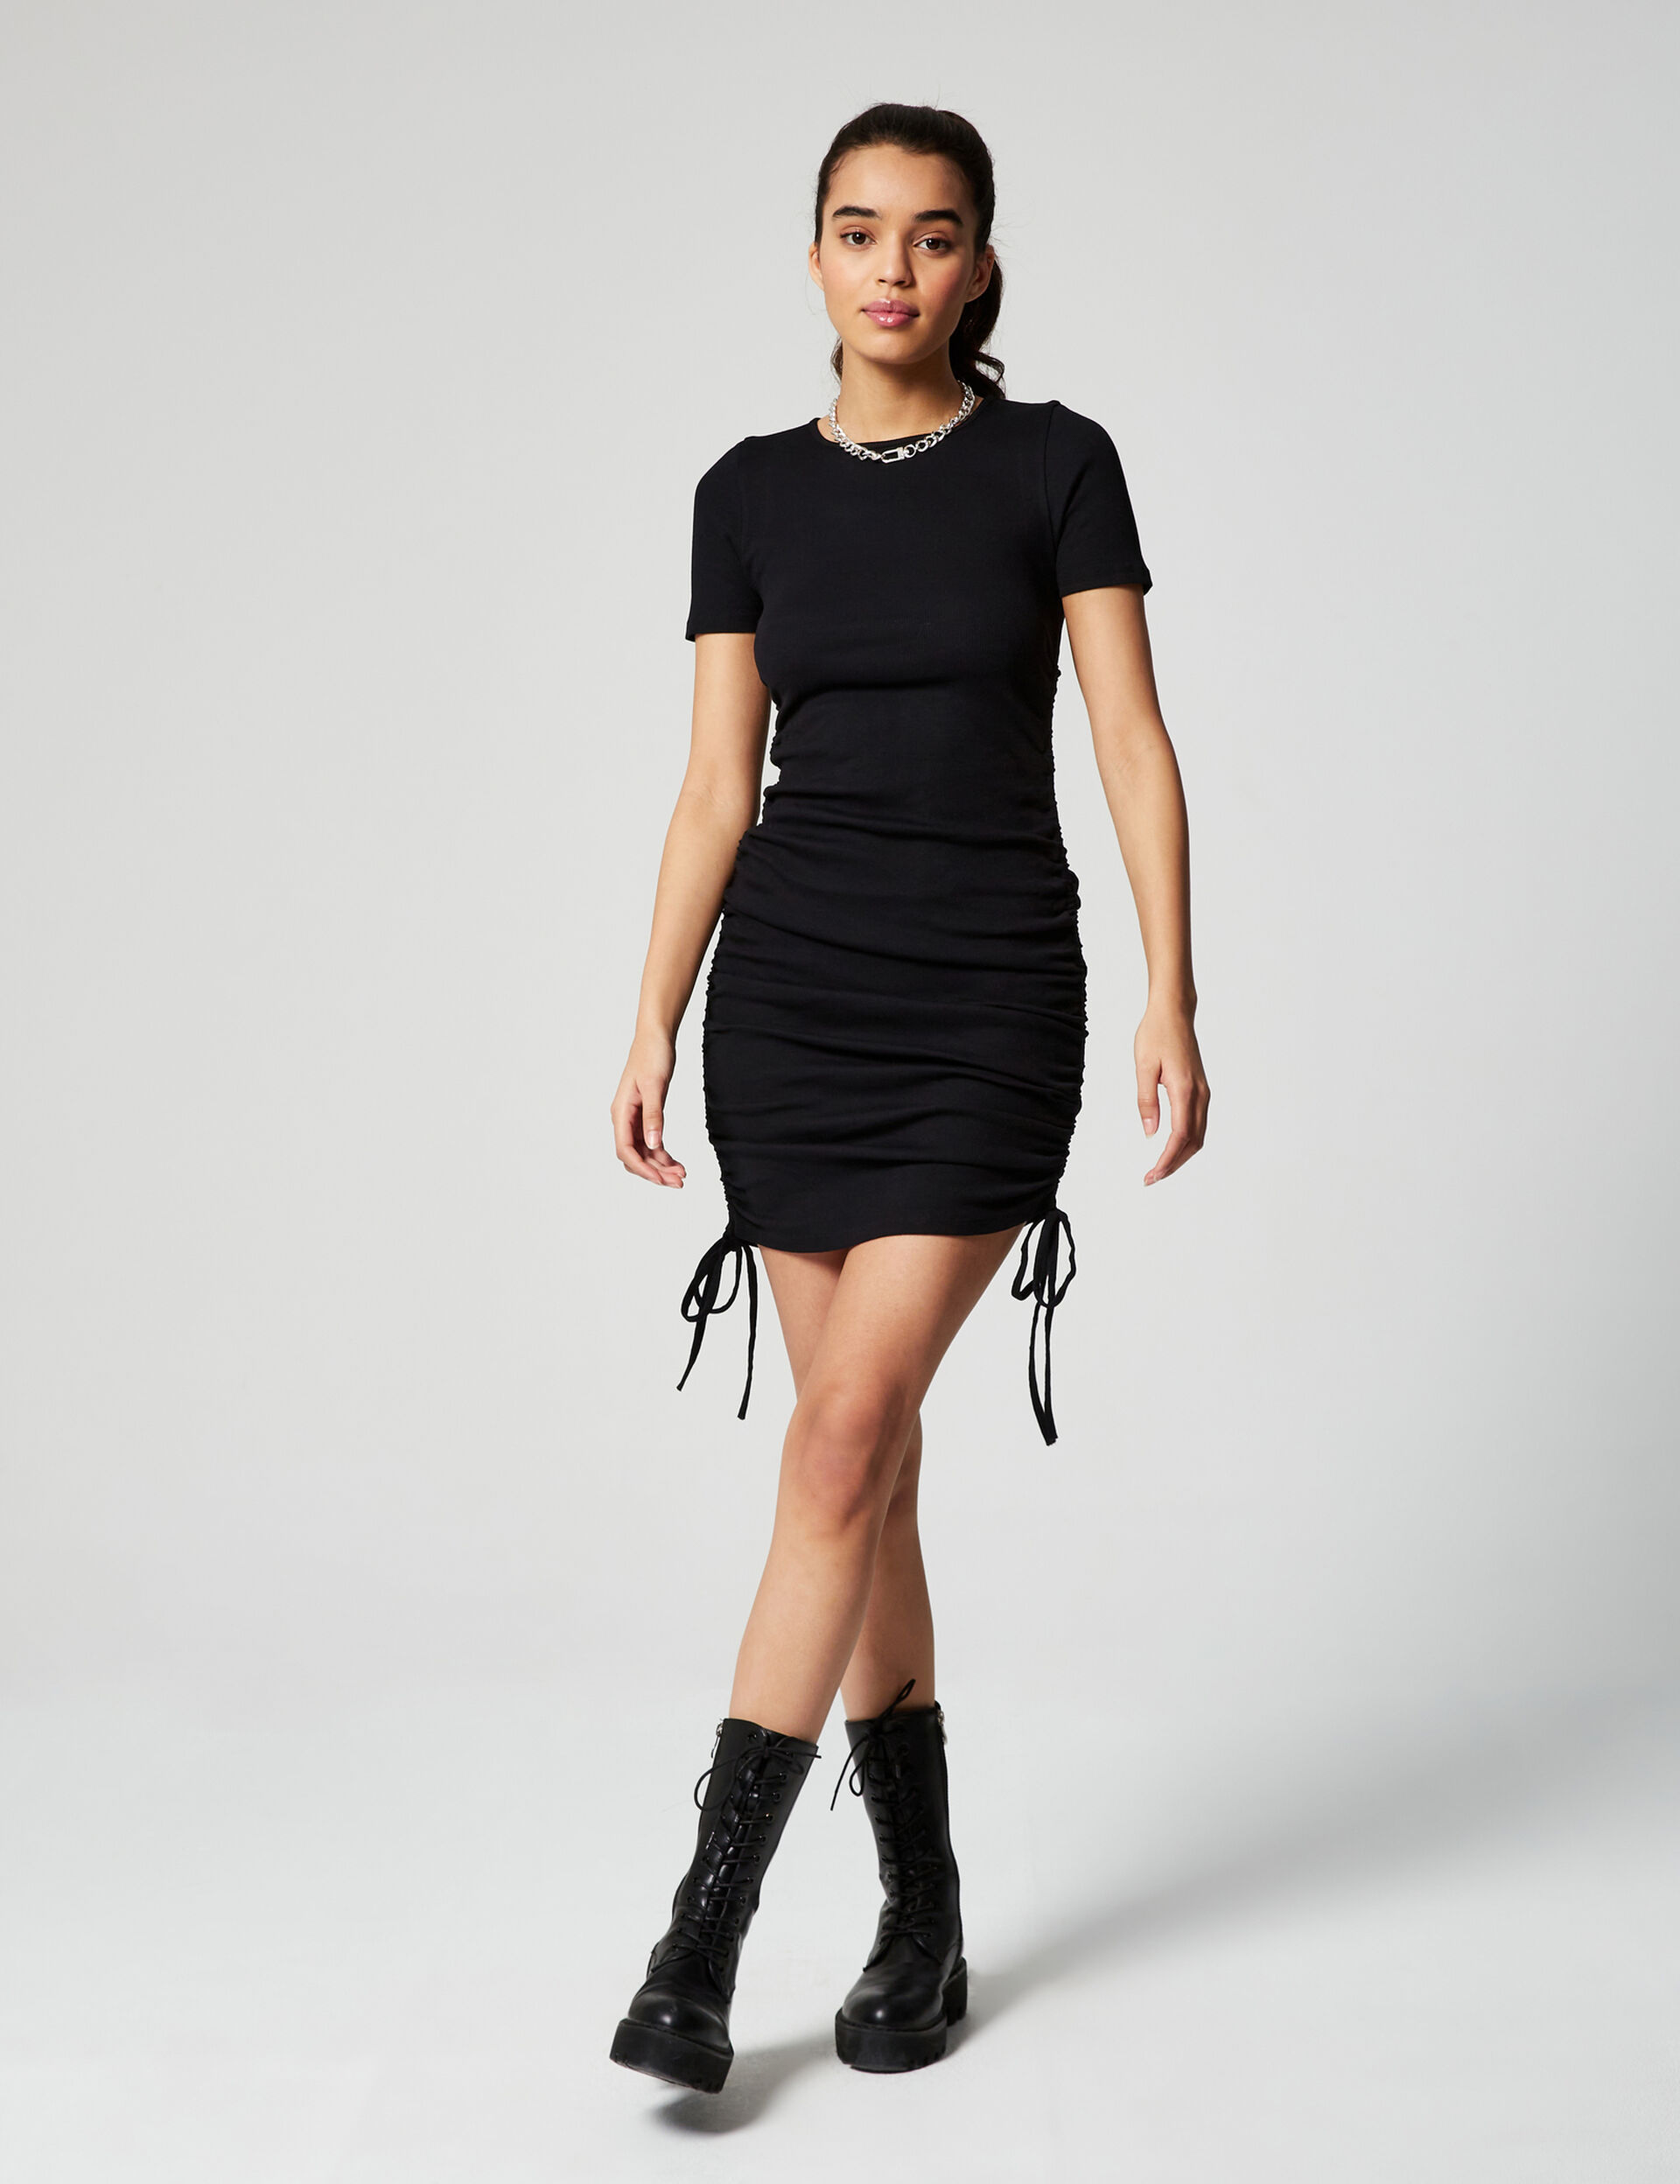 Ribbed dress with strap detail